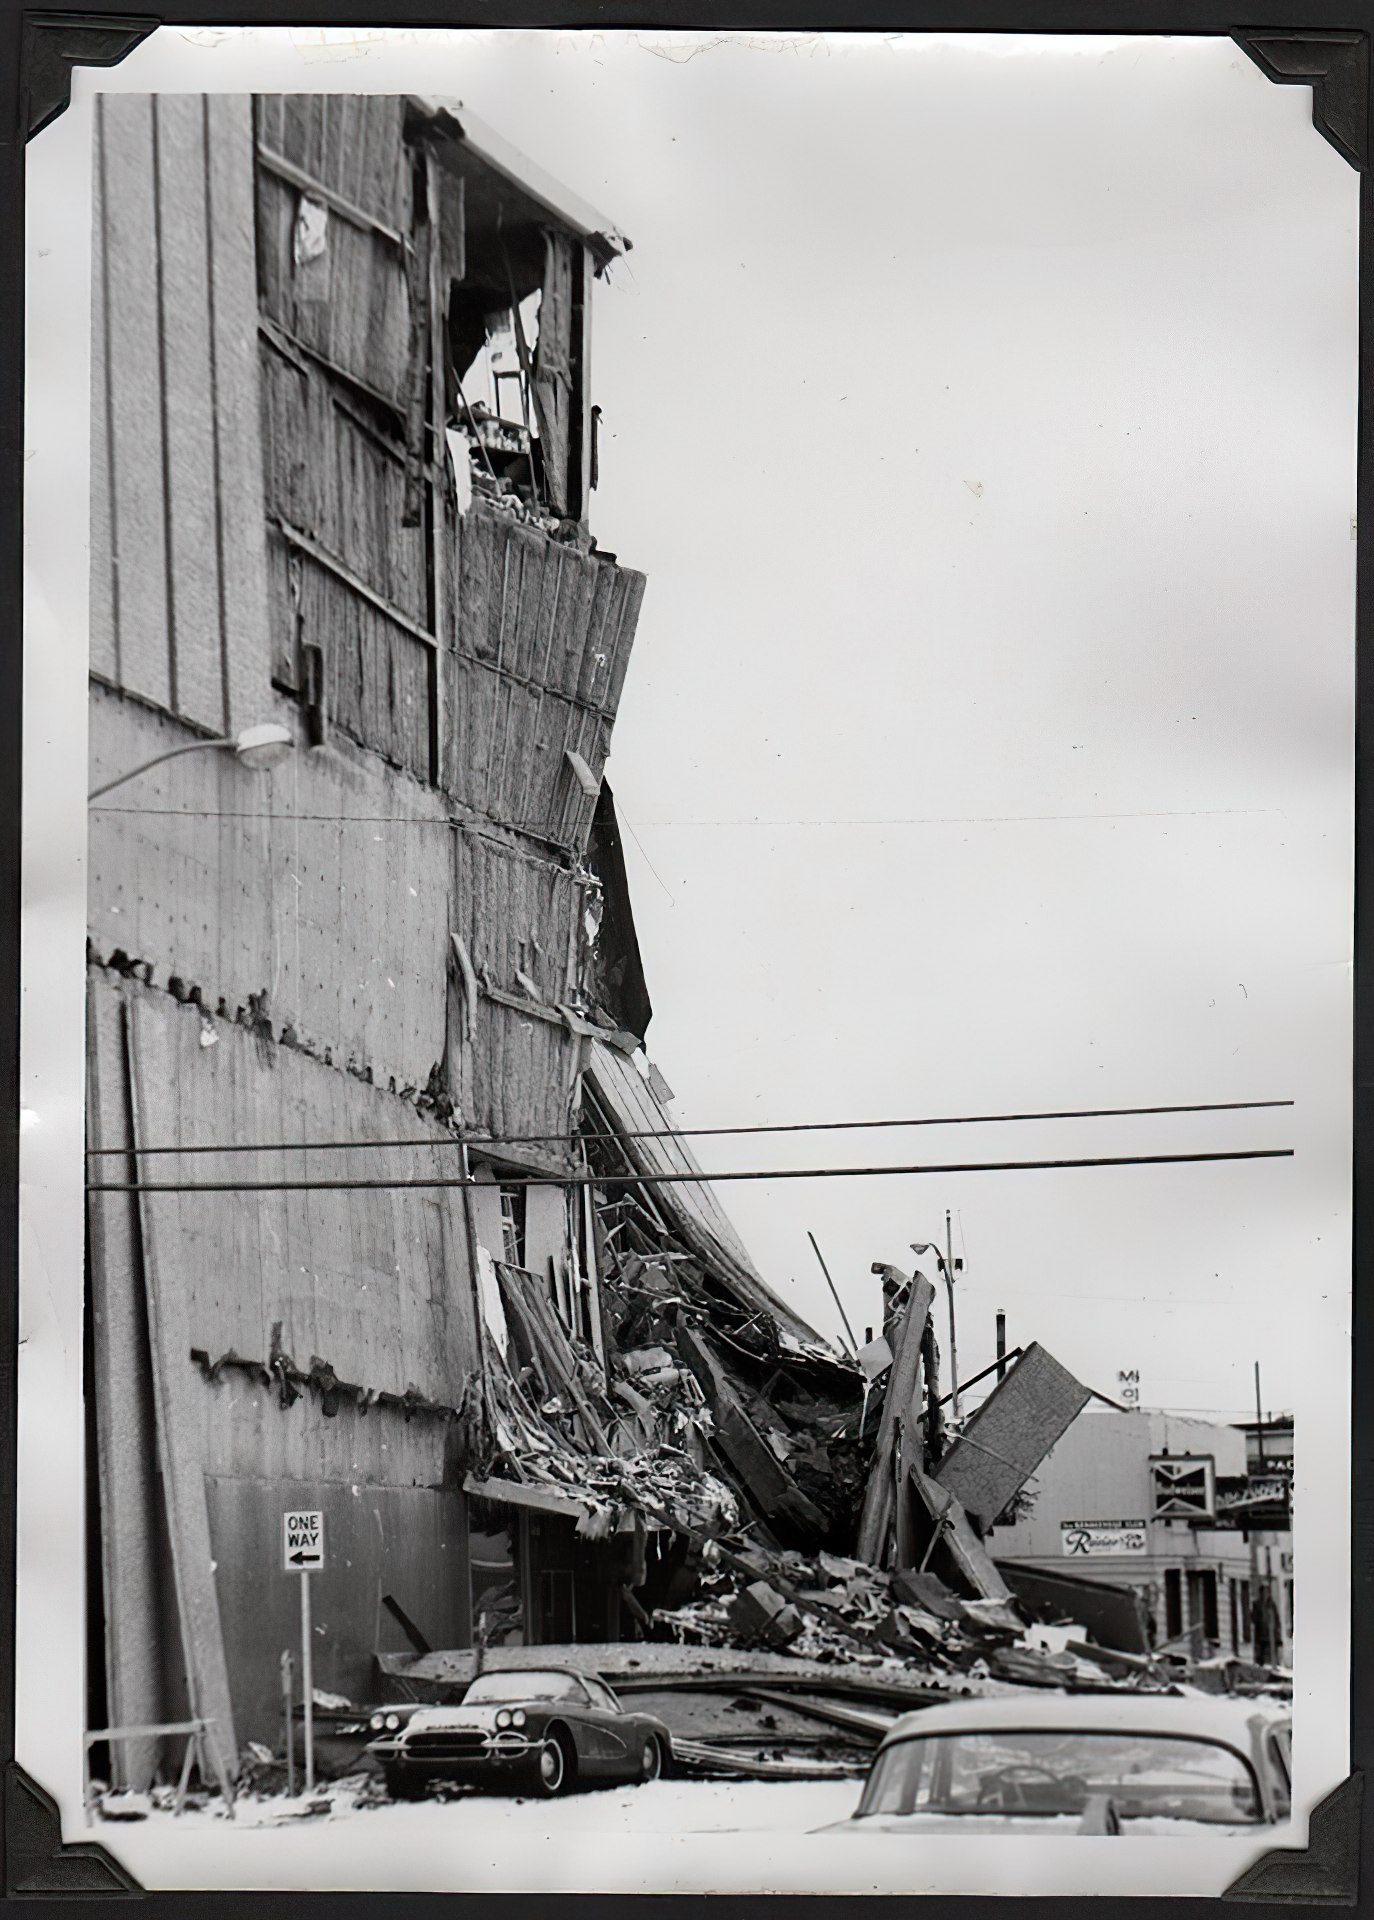 JC Penney Building after the Good Friday earthquake